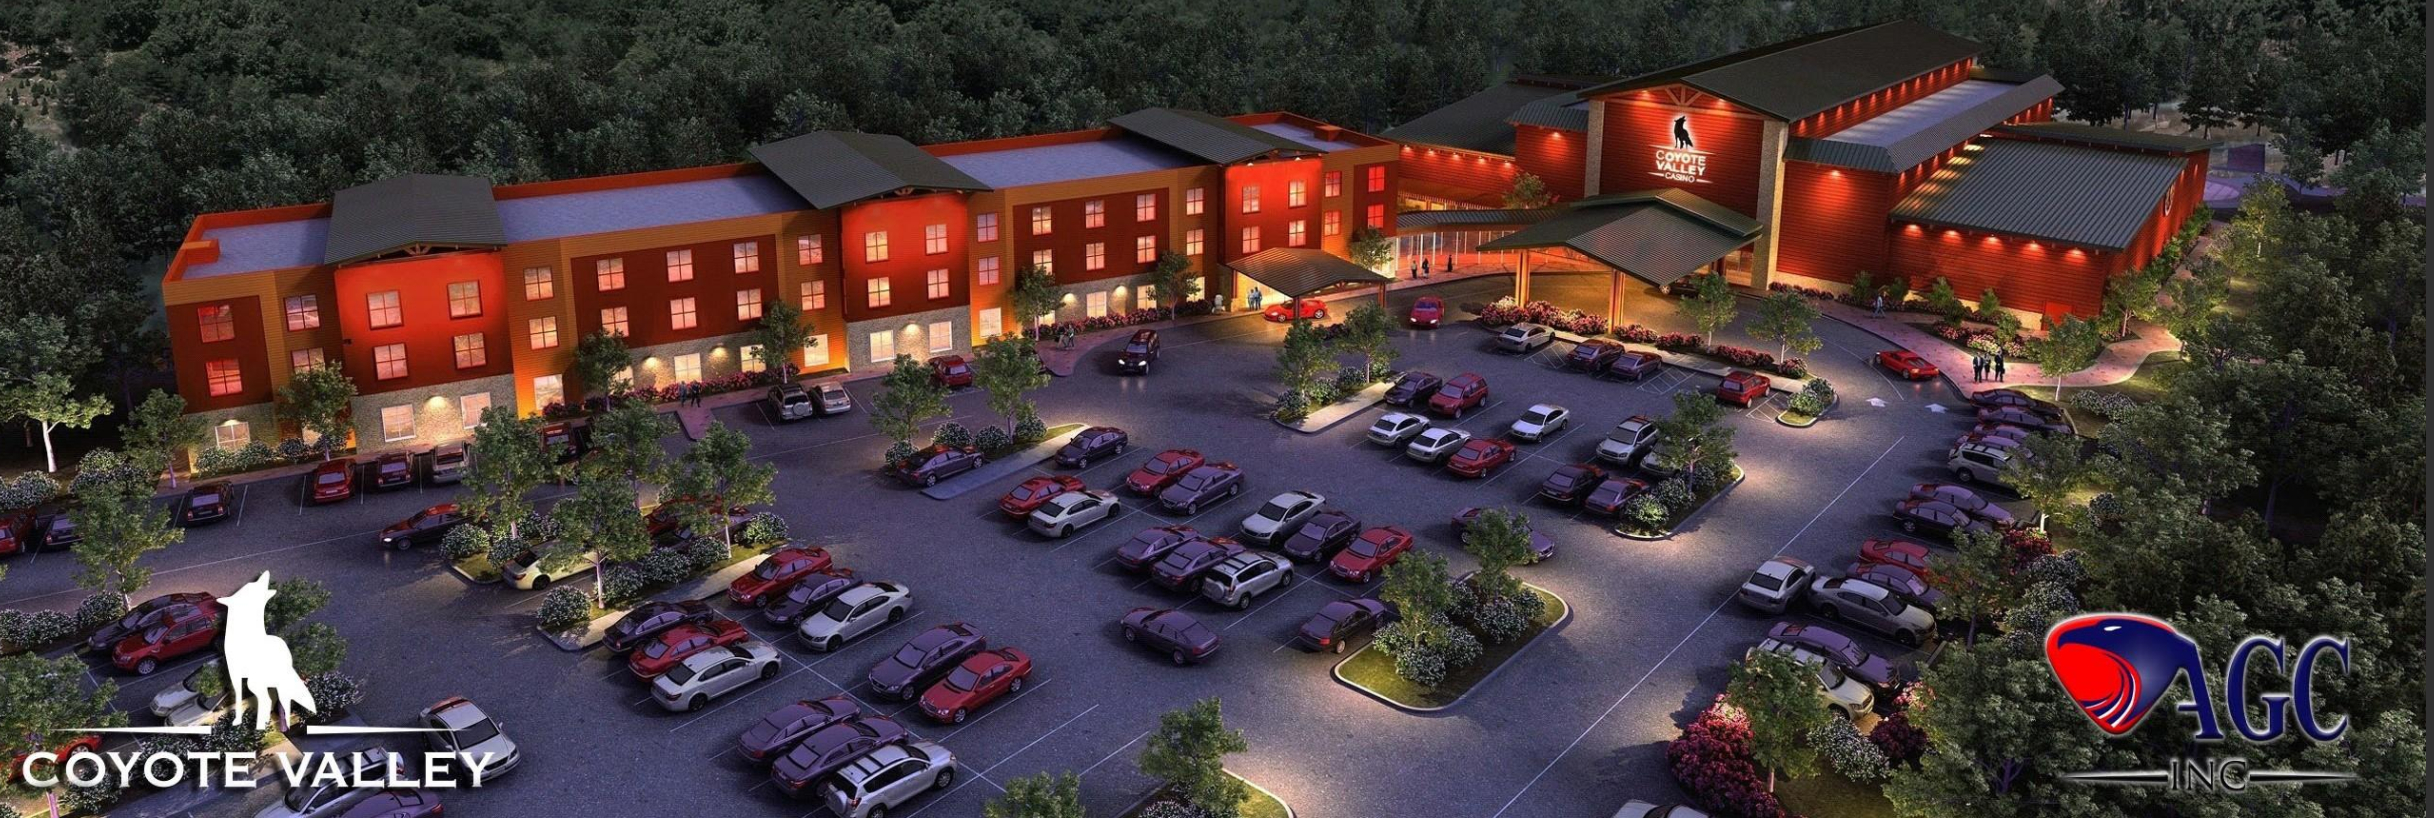 Coyote Valley Casino Hotel Specifies Casino Air Technology…